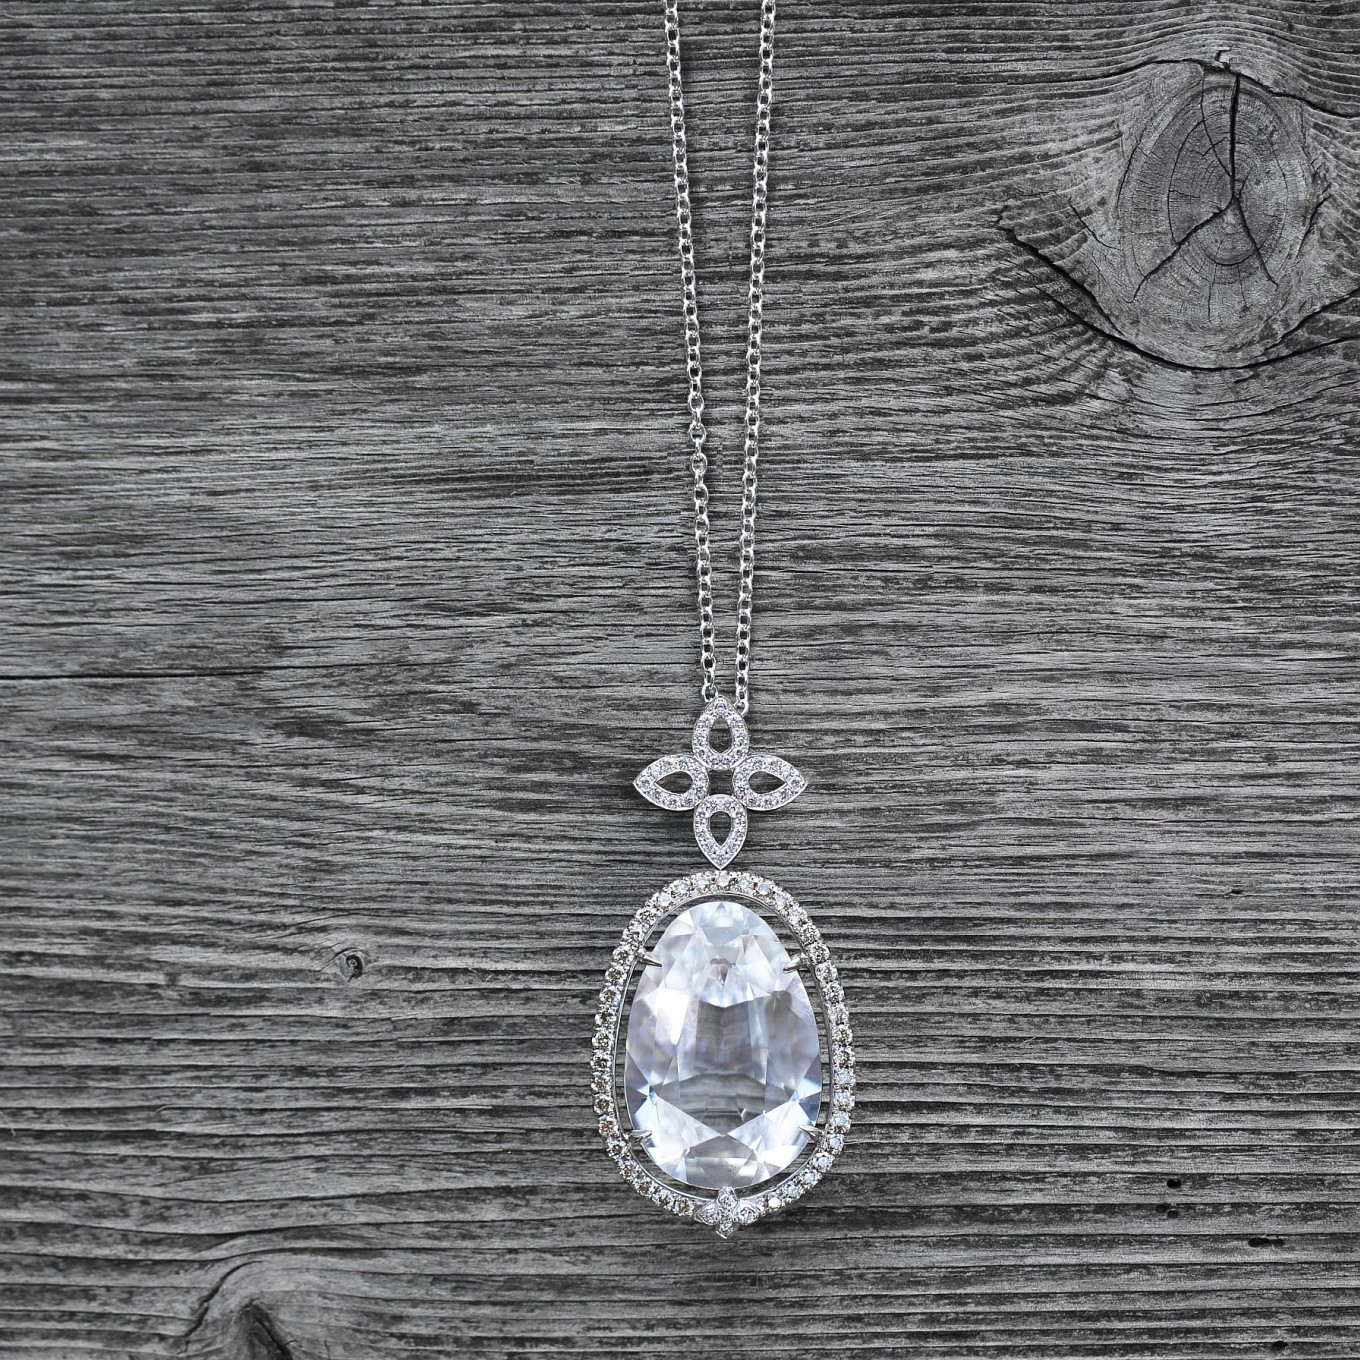 Antique cushion cut White Tourmaline & Champagne Diamond pendant - shown with detachable Flat Sevilla diamond pendant.